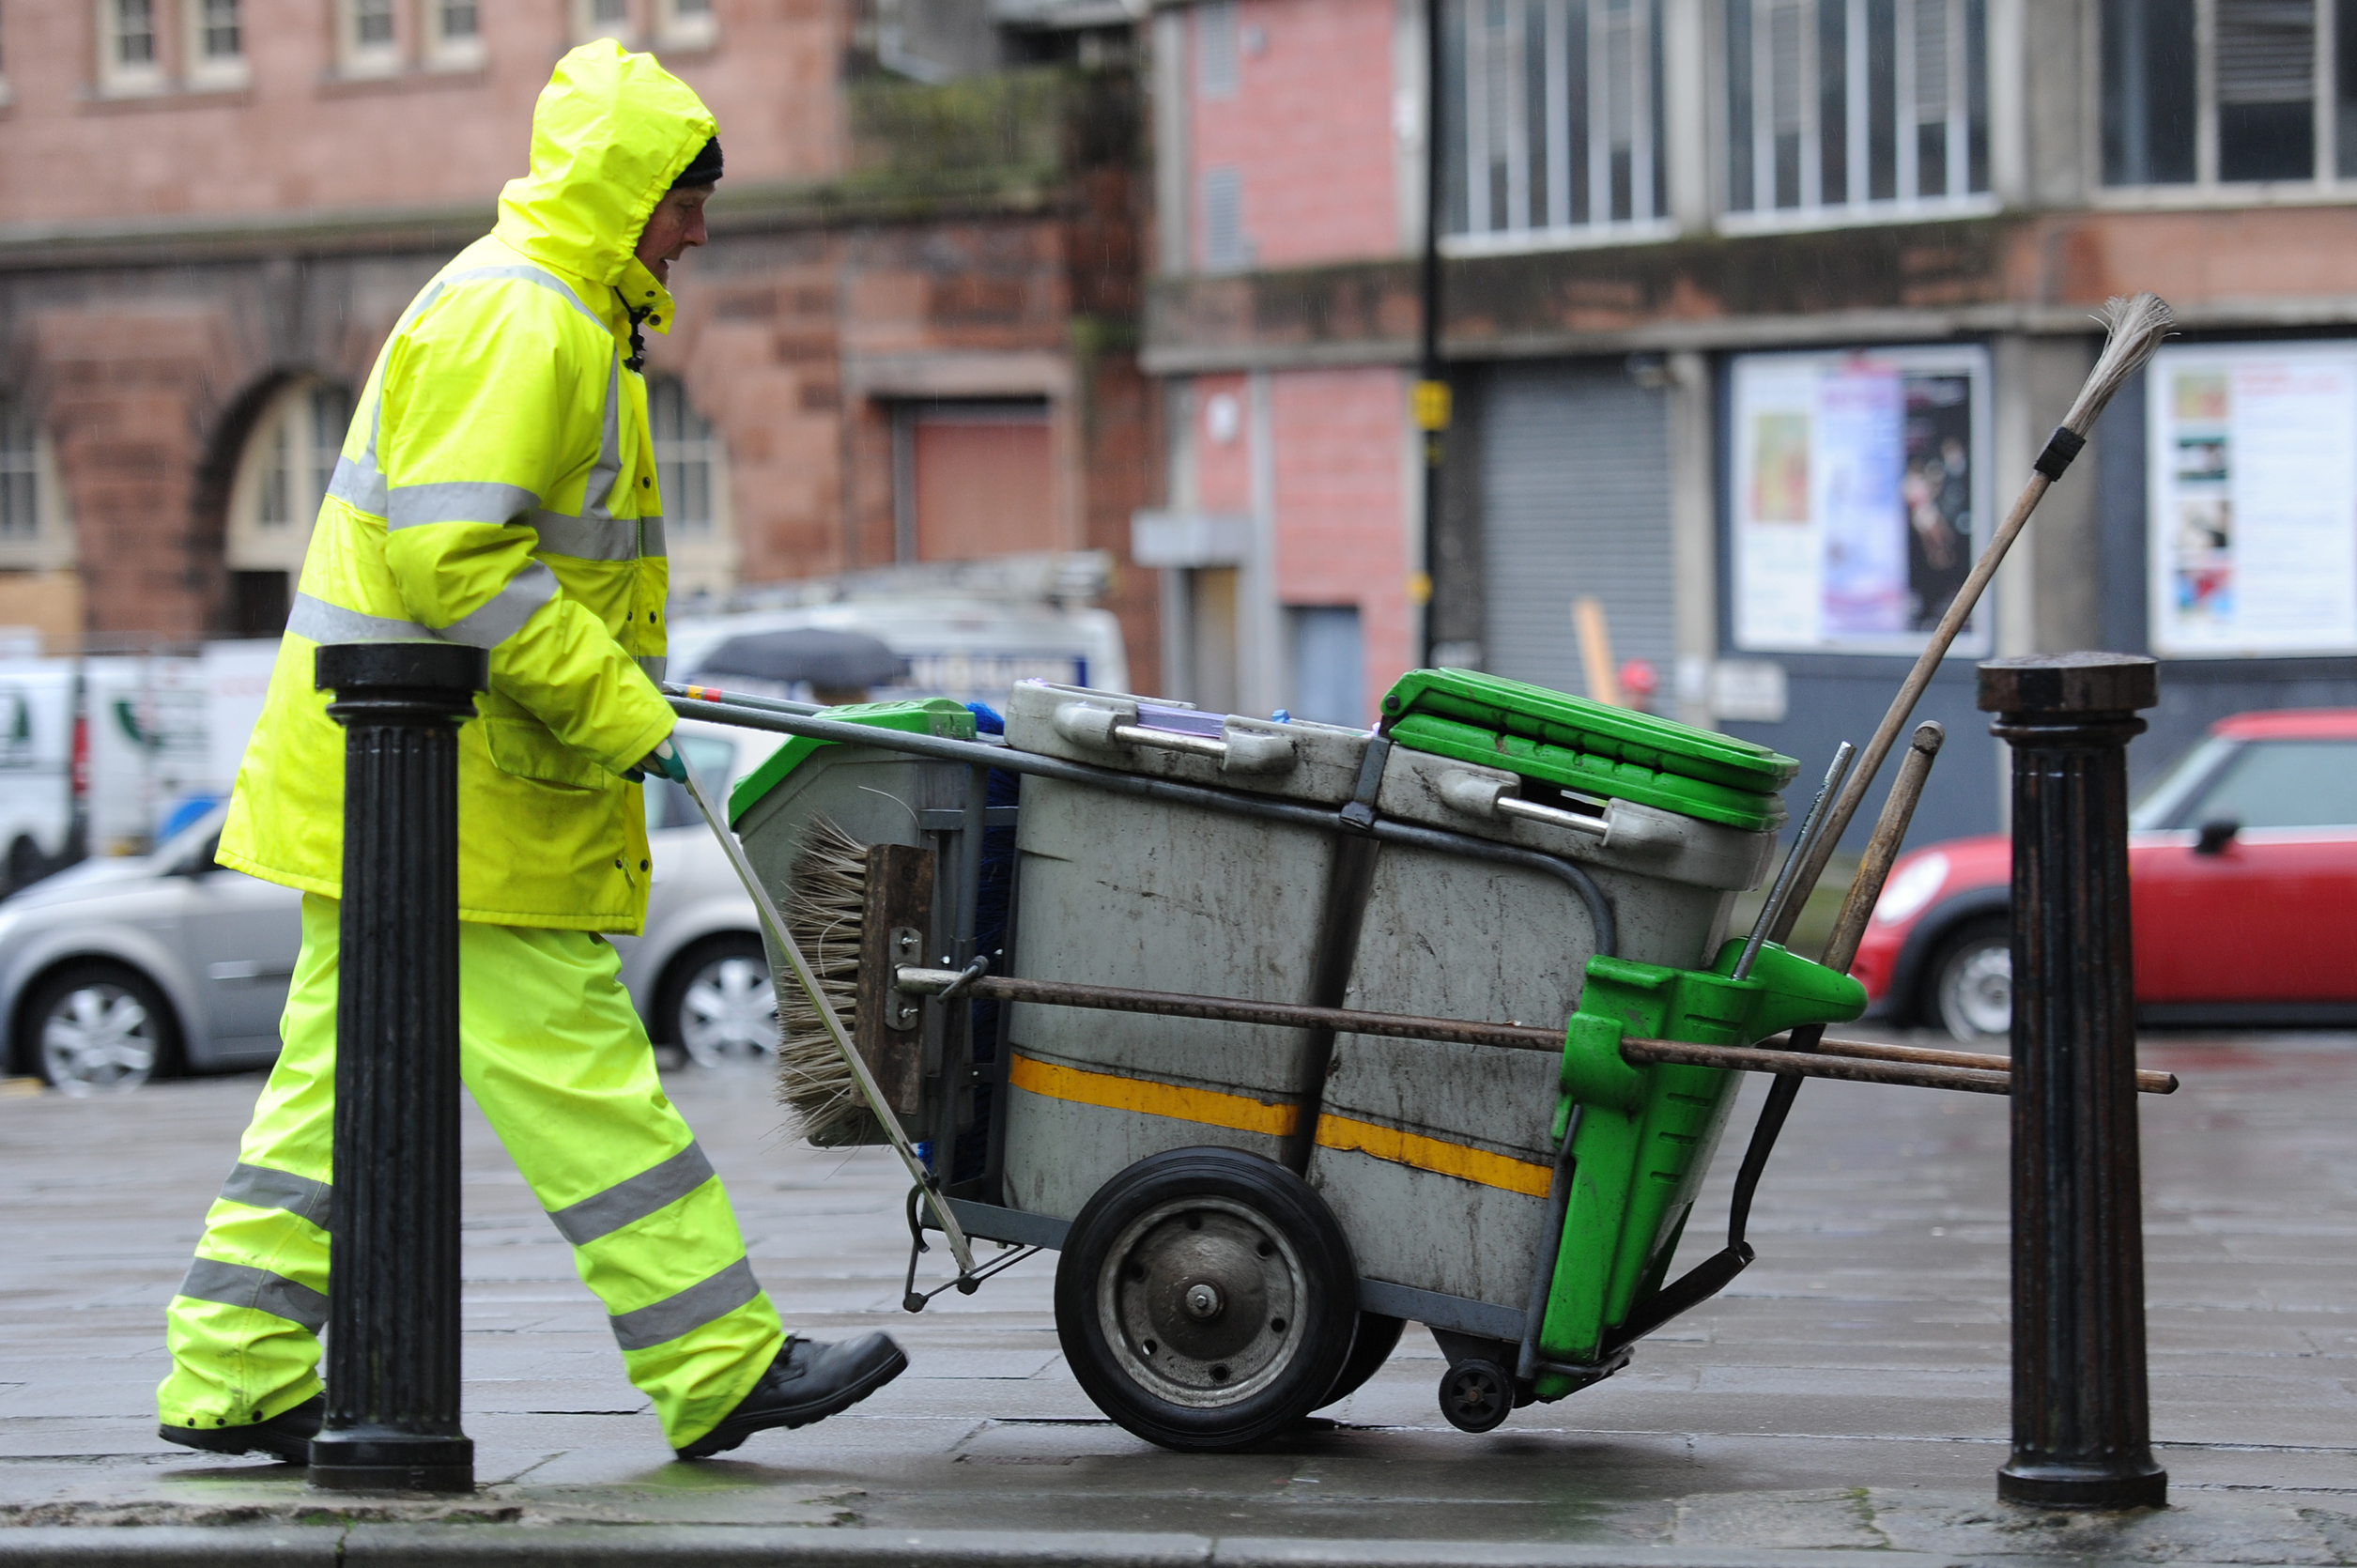 A street cleaner at work in Dundee.